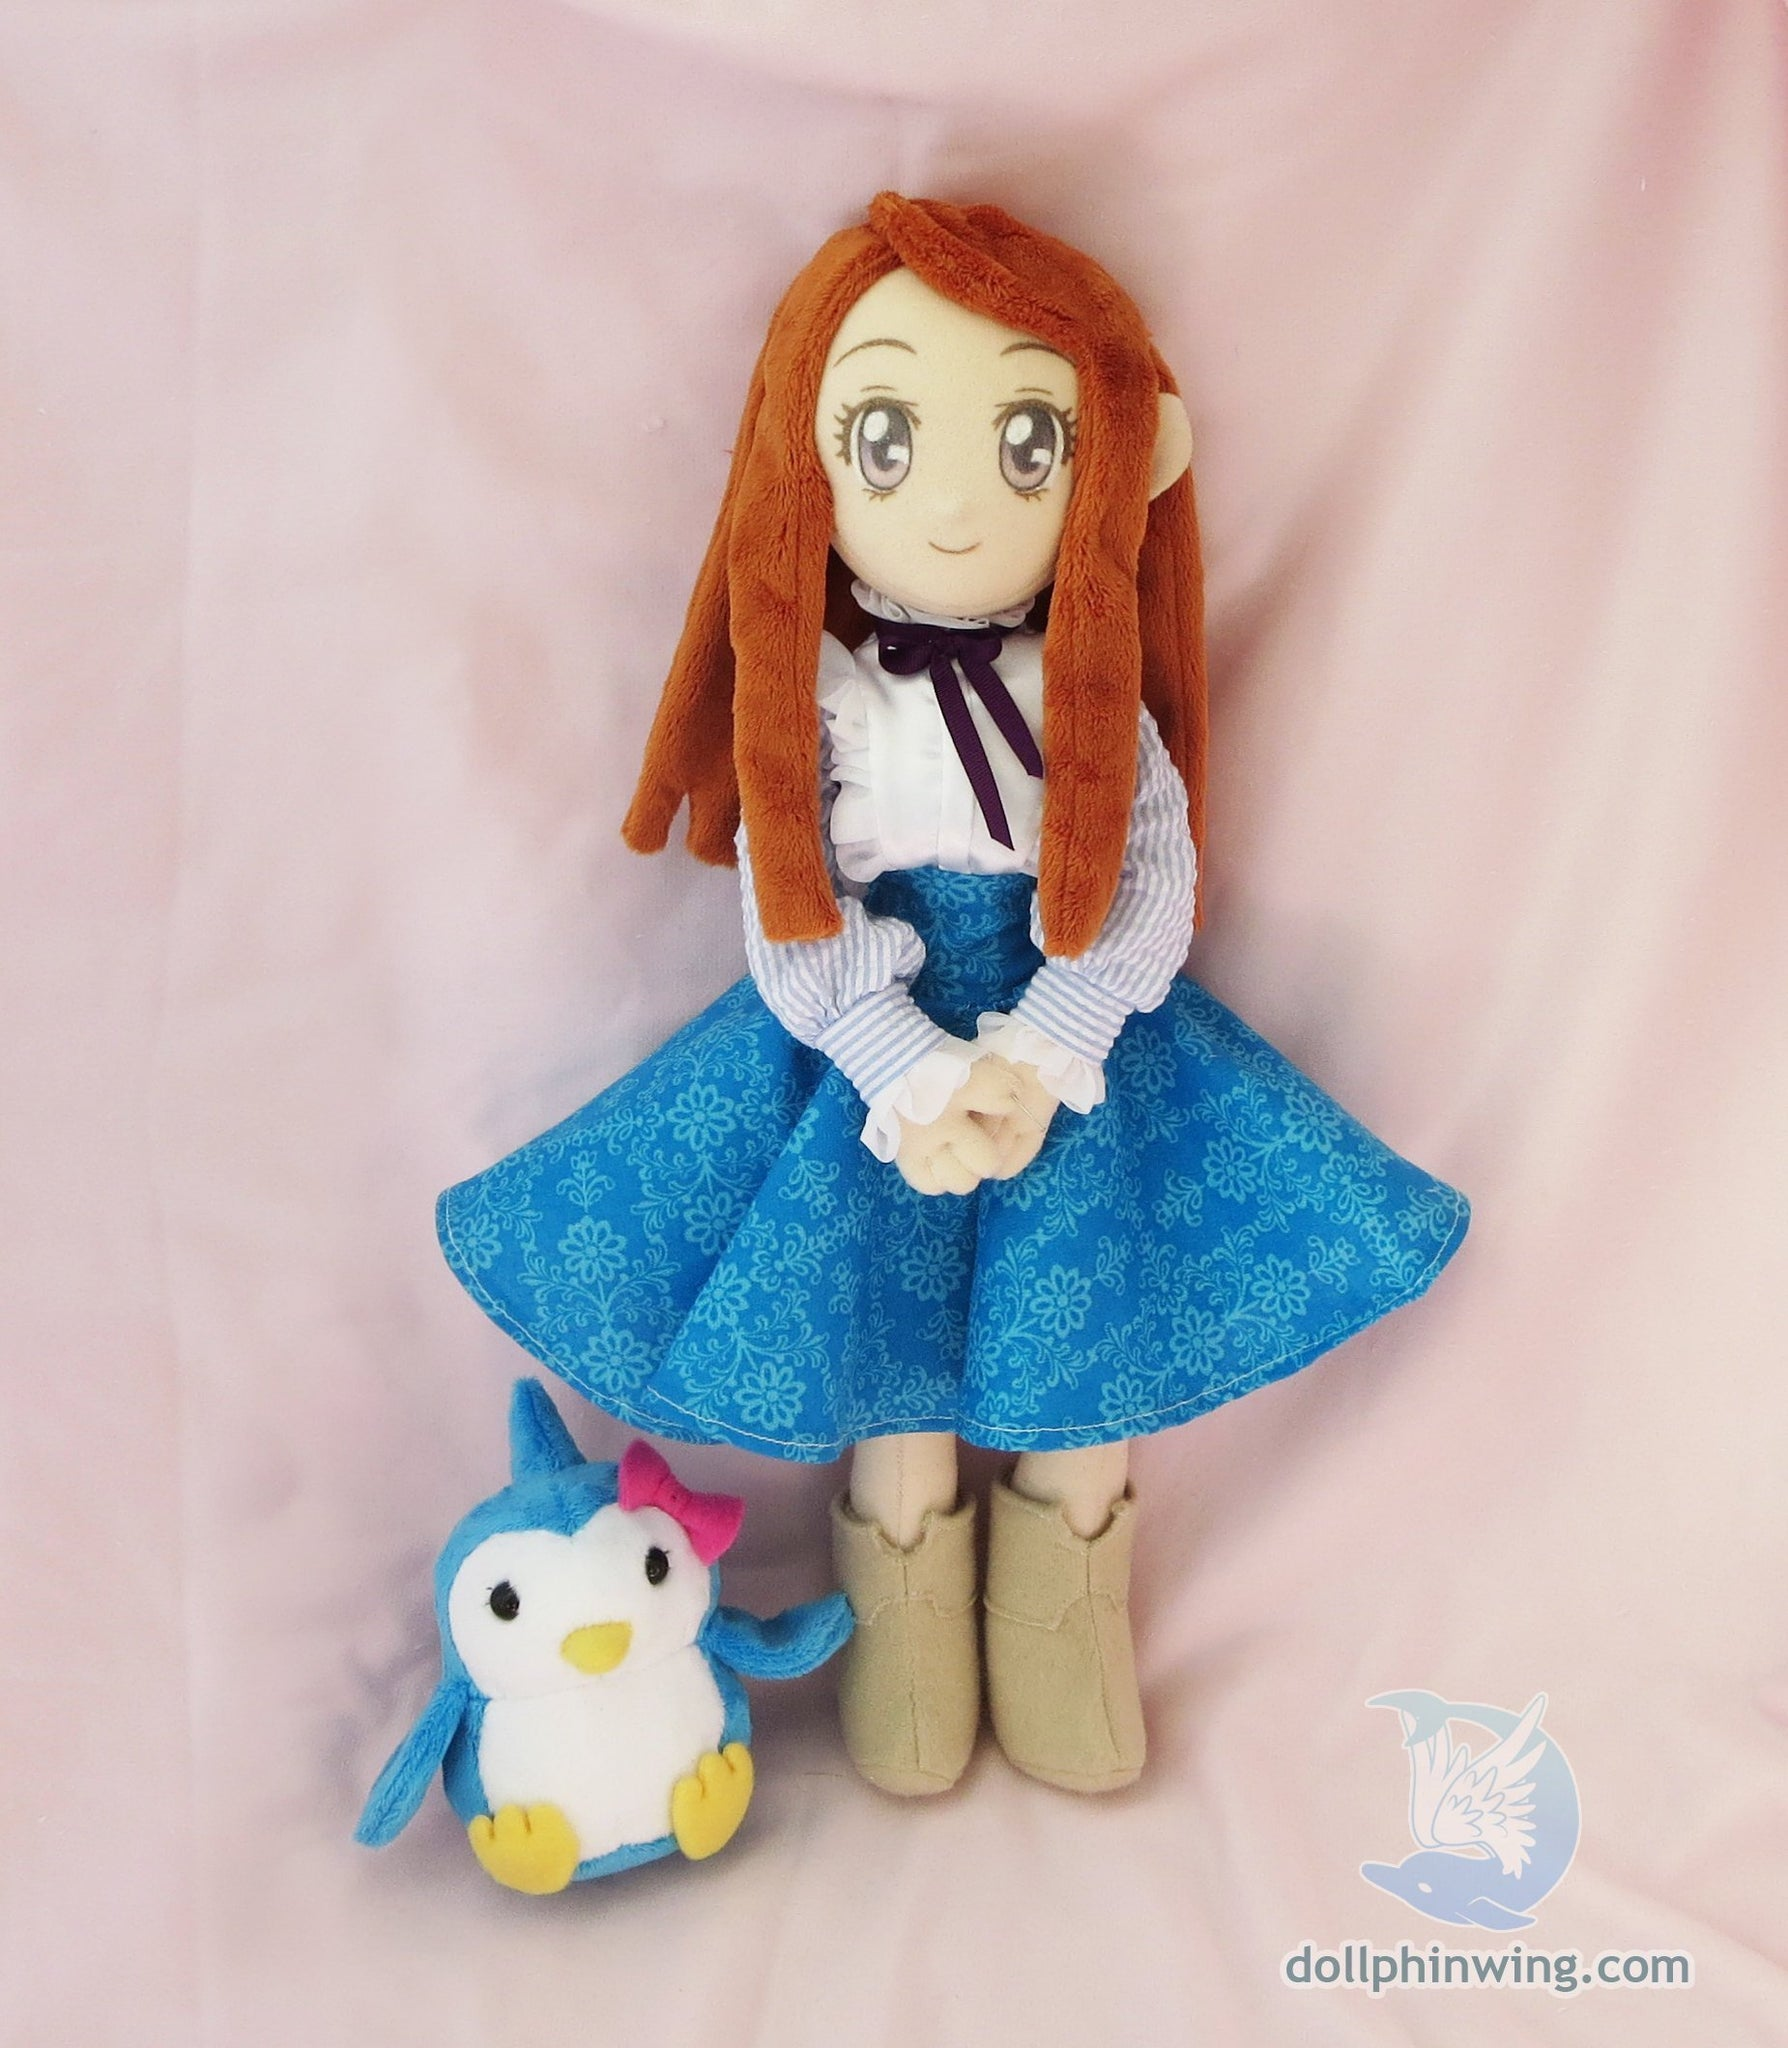 Penguindrum Himari Doll | Himari Takakura Plush Doll with Penguin